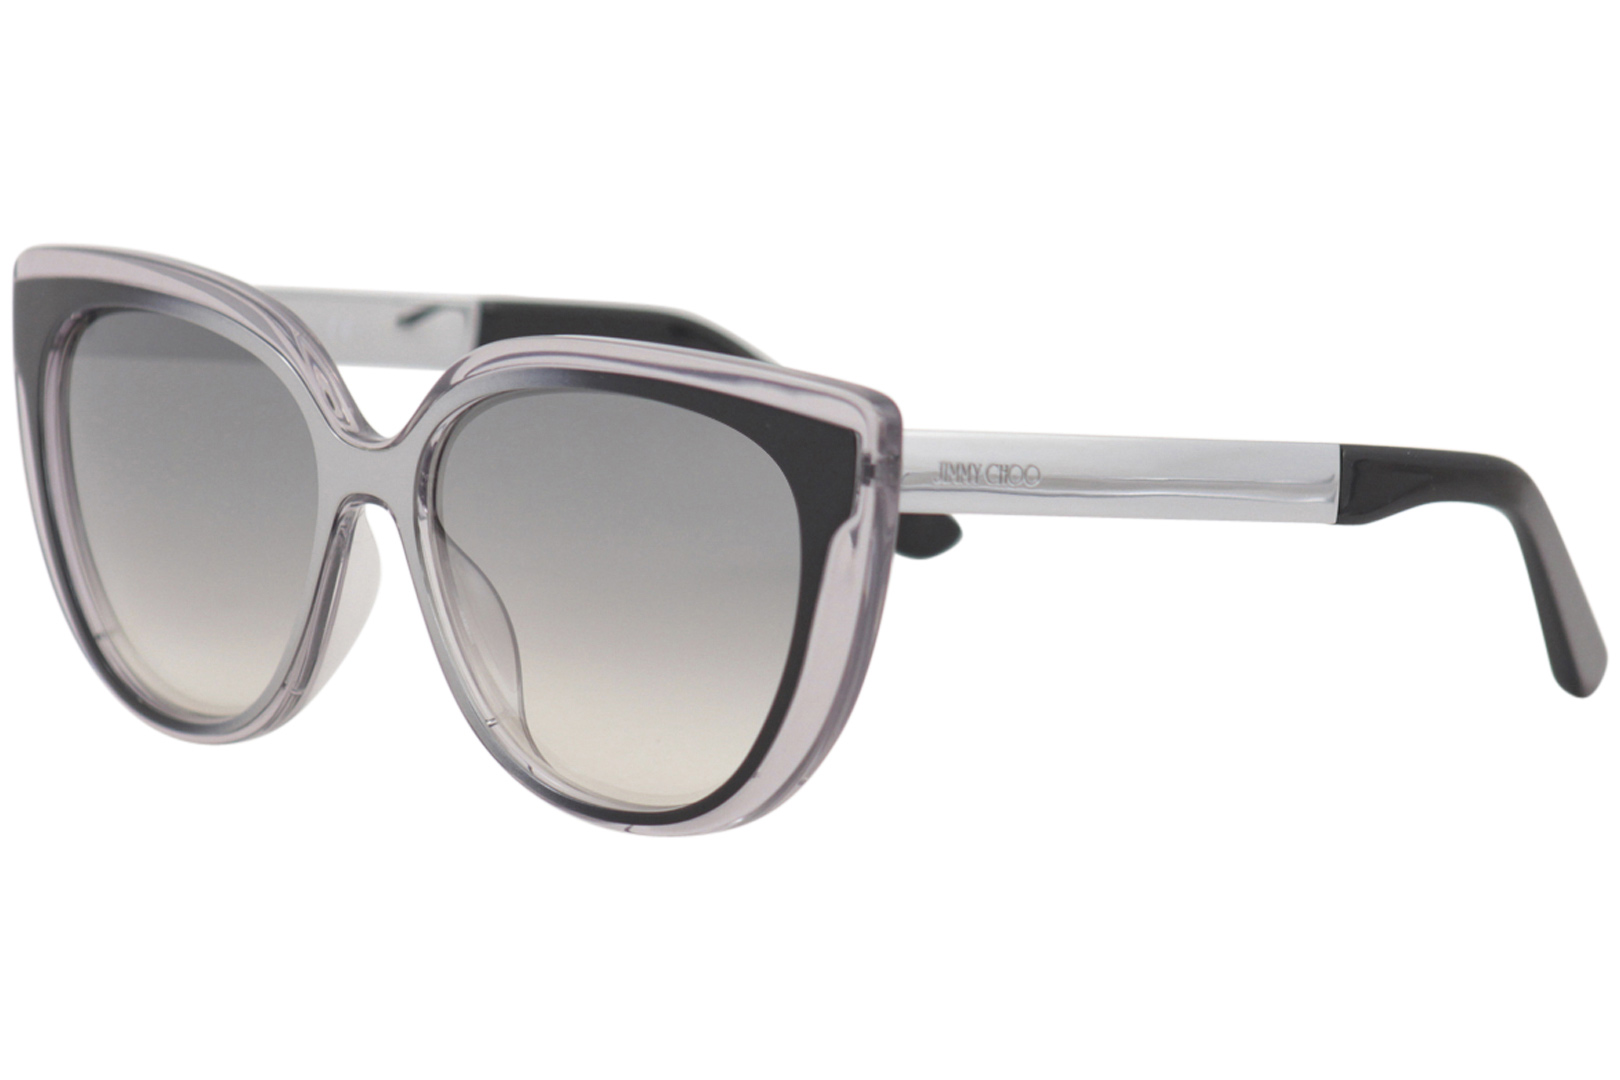 b494025c6ae Jimmy Choo Women s Cindy S 1M0IC Grey Fashion Square Sunglasses 57mm ...